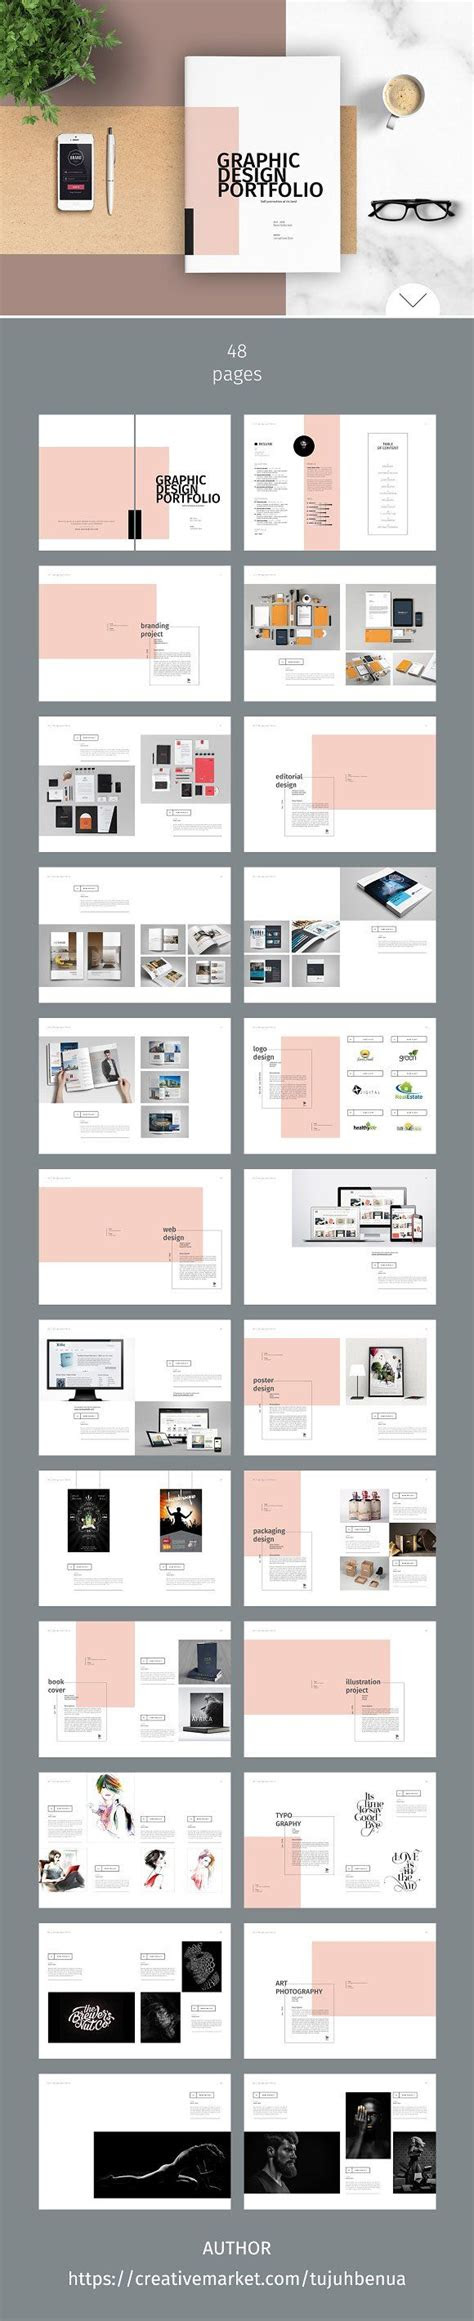 Graphic Design Portfolio Book Layout Template,Wrist Name Tattoos Designs On Arm